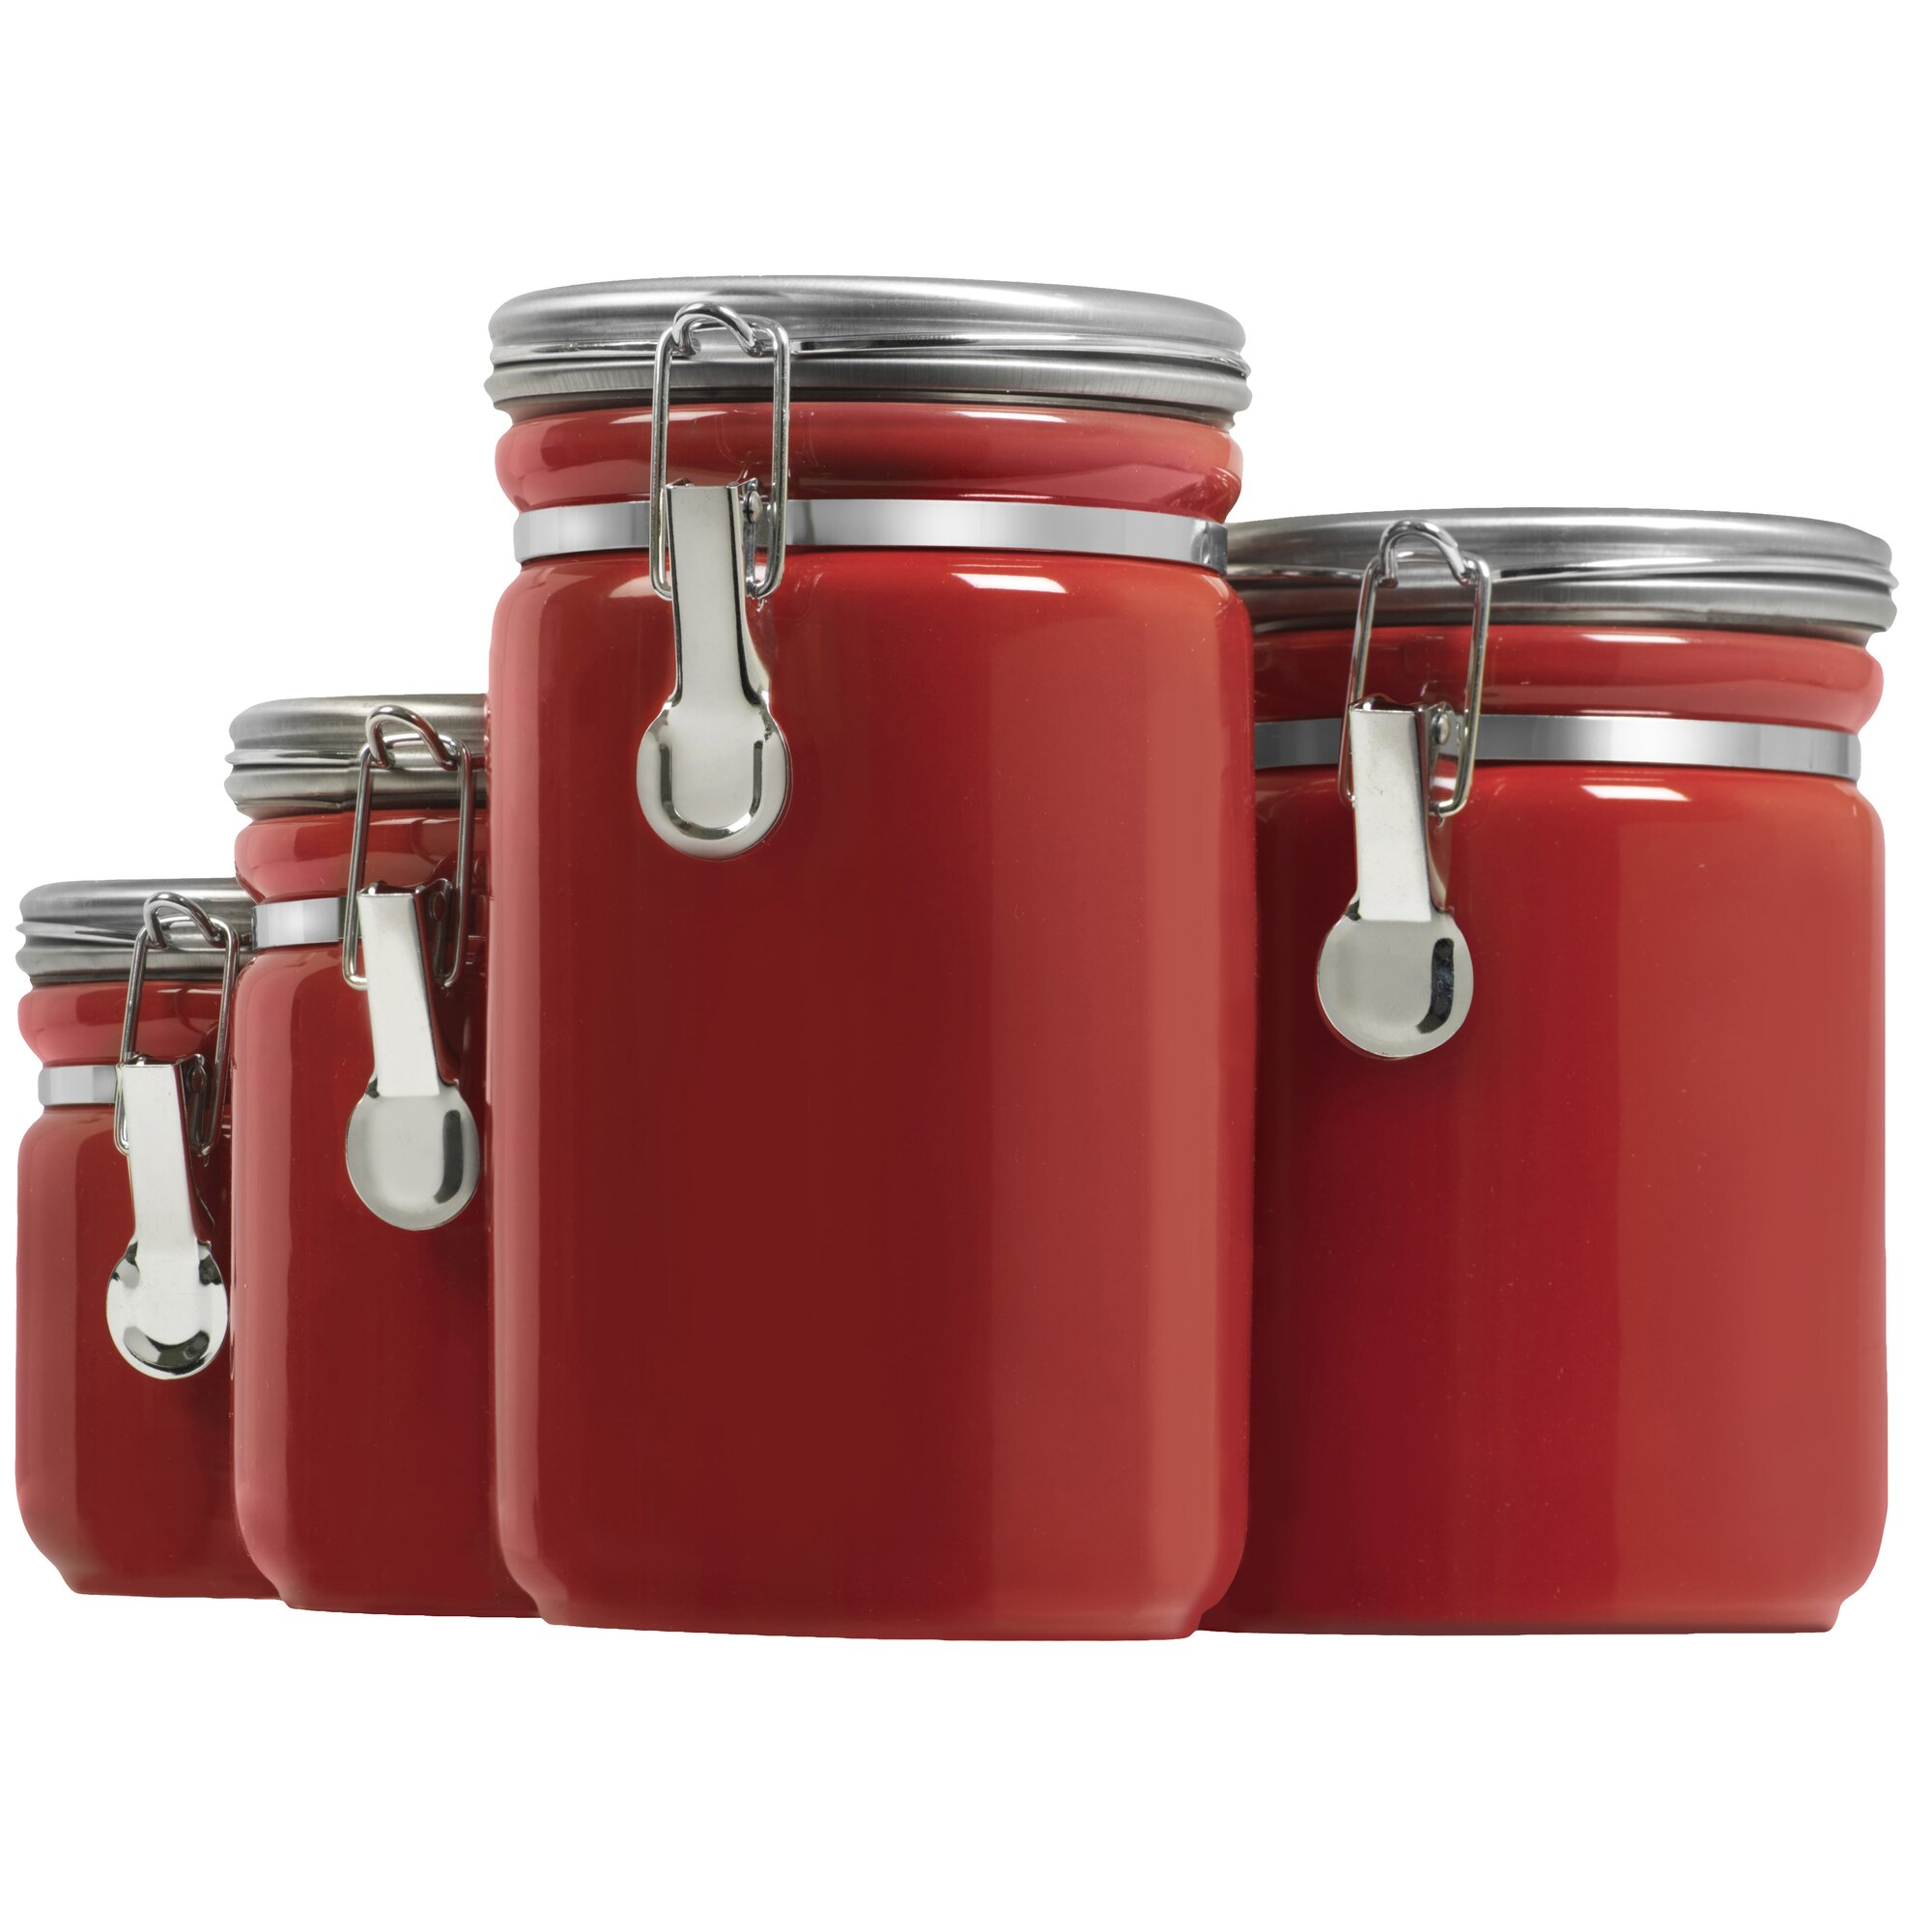 100 tuscan kitchen canisters tuscan style kitchen pictures tuscan kitchen canisters kitchen canisters